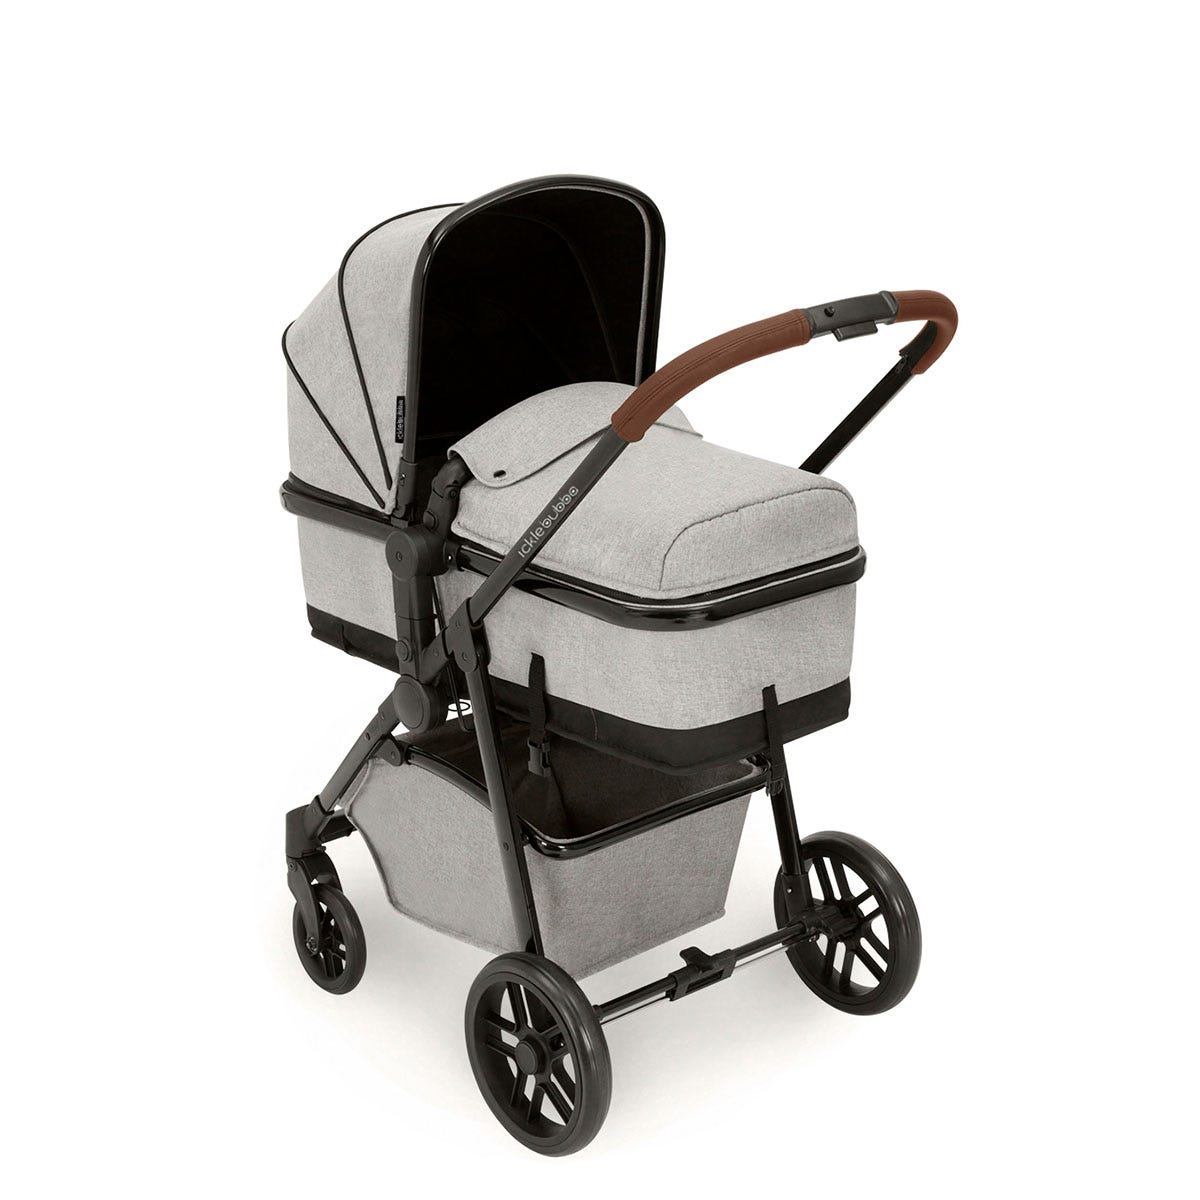 Ickle Bubba Moon i-Size 3 in 1 Travel System - Silver Grey on Black with Tan Handles